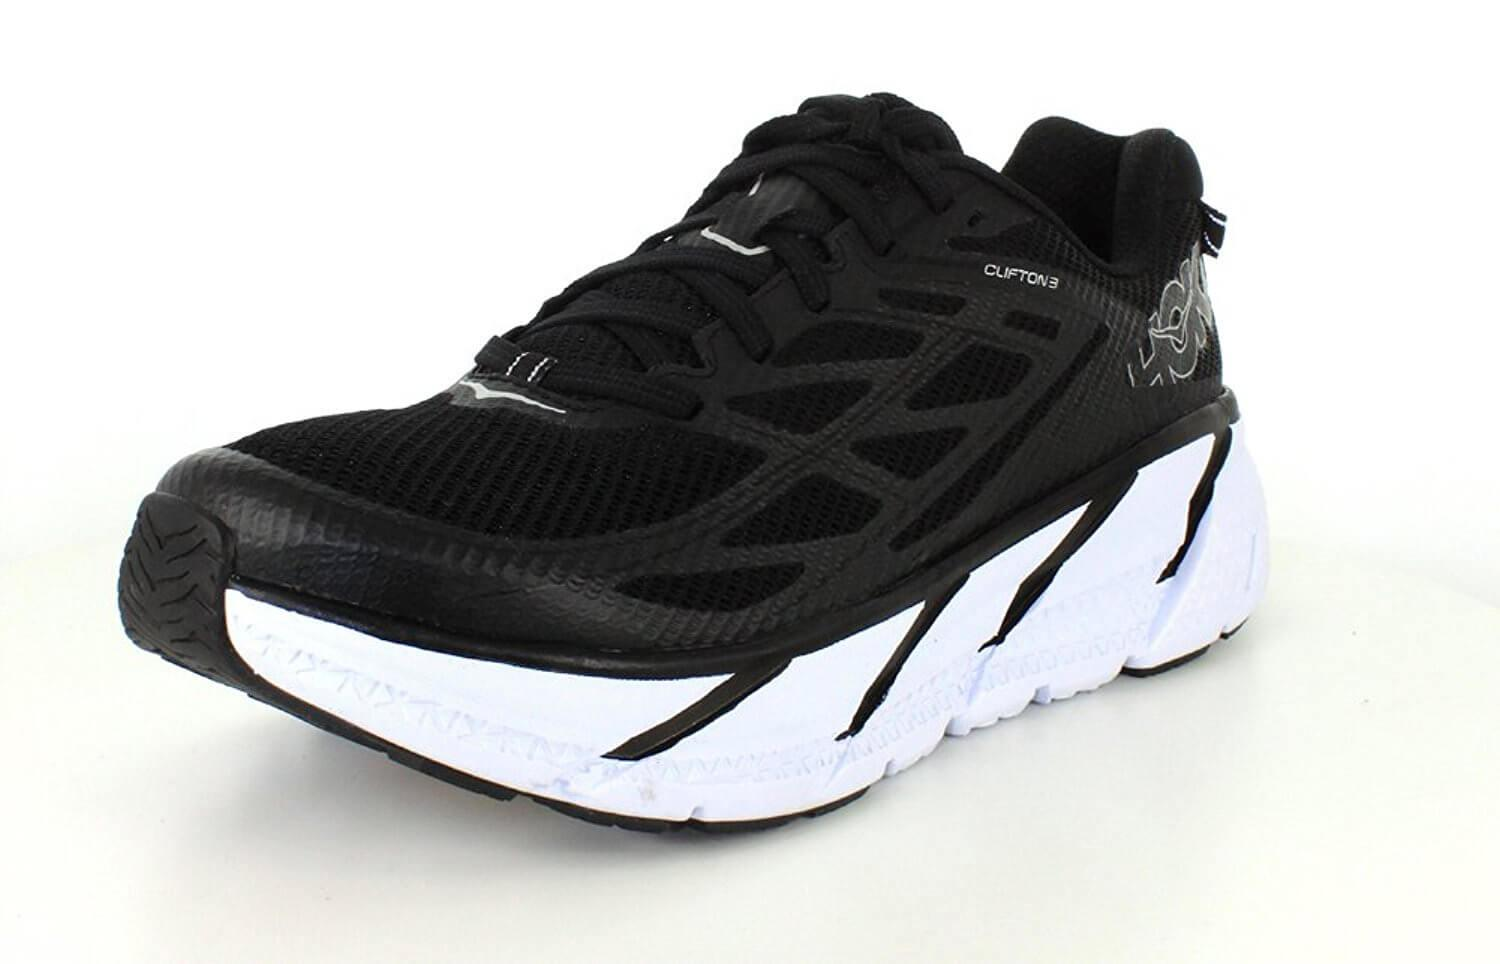 da8f12c05e8 Best Running Shoes for Shin Splints Reviewed in 2019